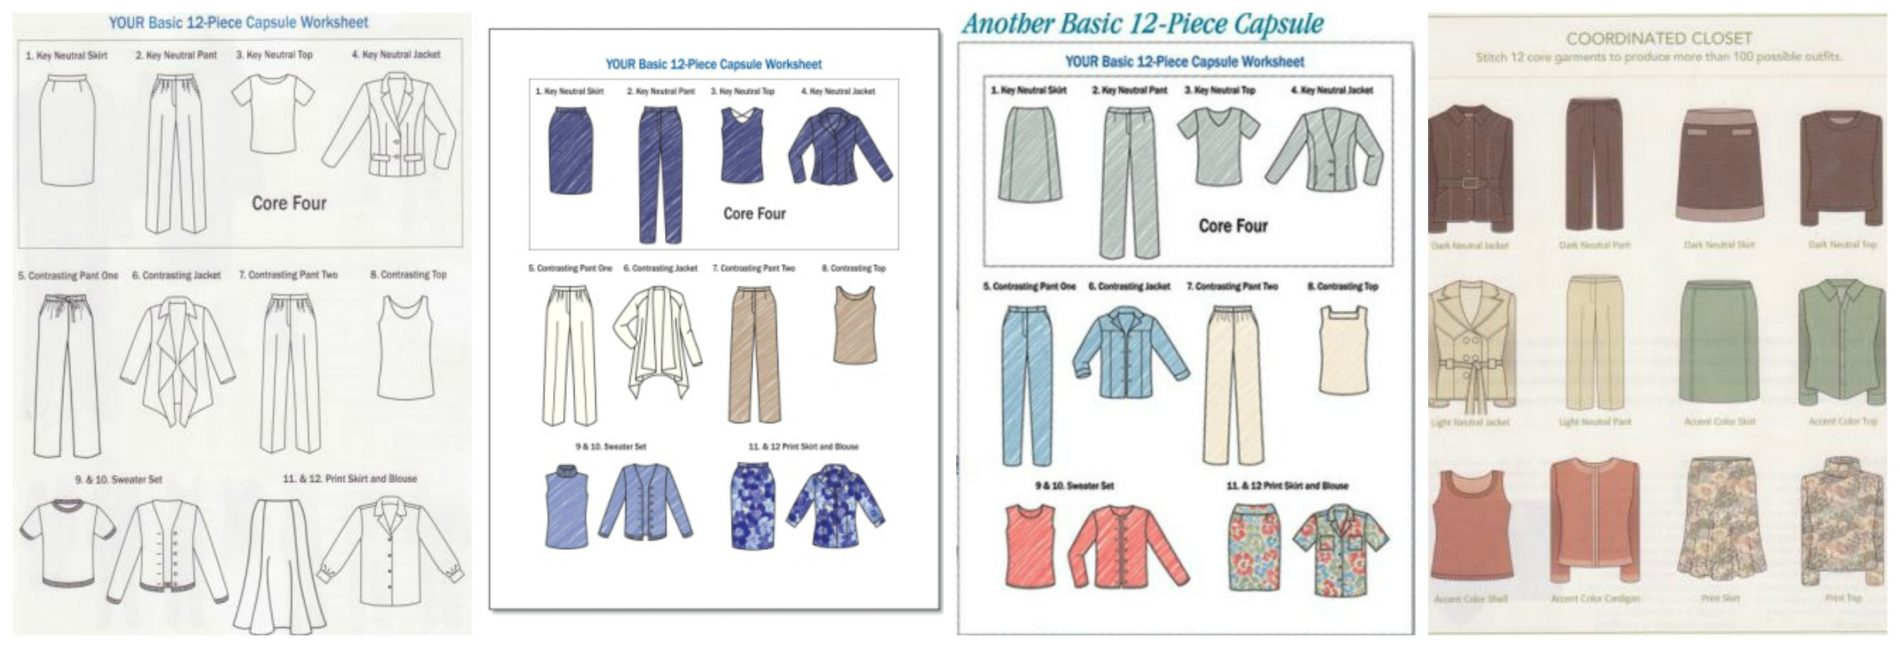 Components for sewing your 12 piece wardrobe nancy nix rice capsule charts nvjuhfo Image collections